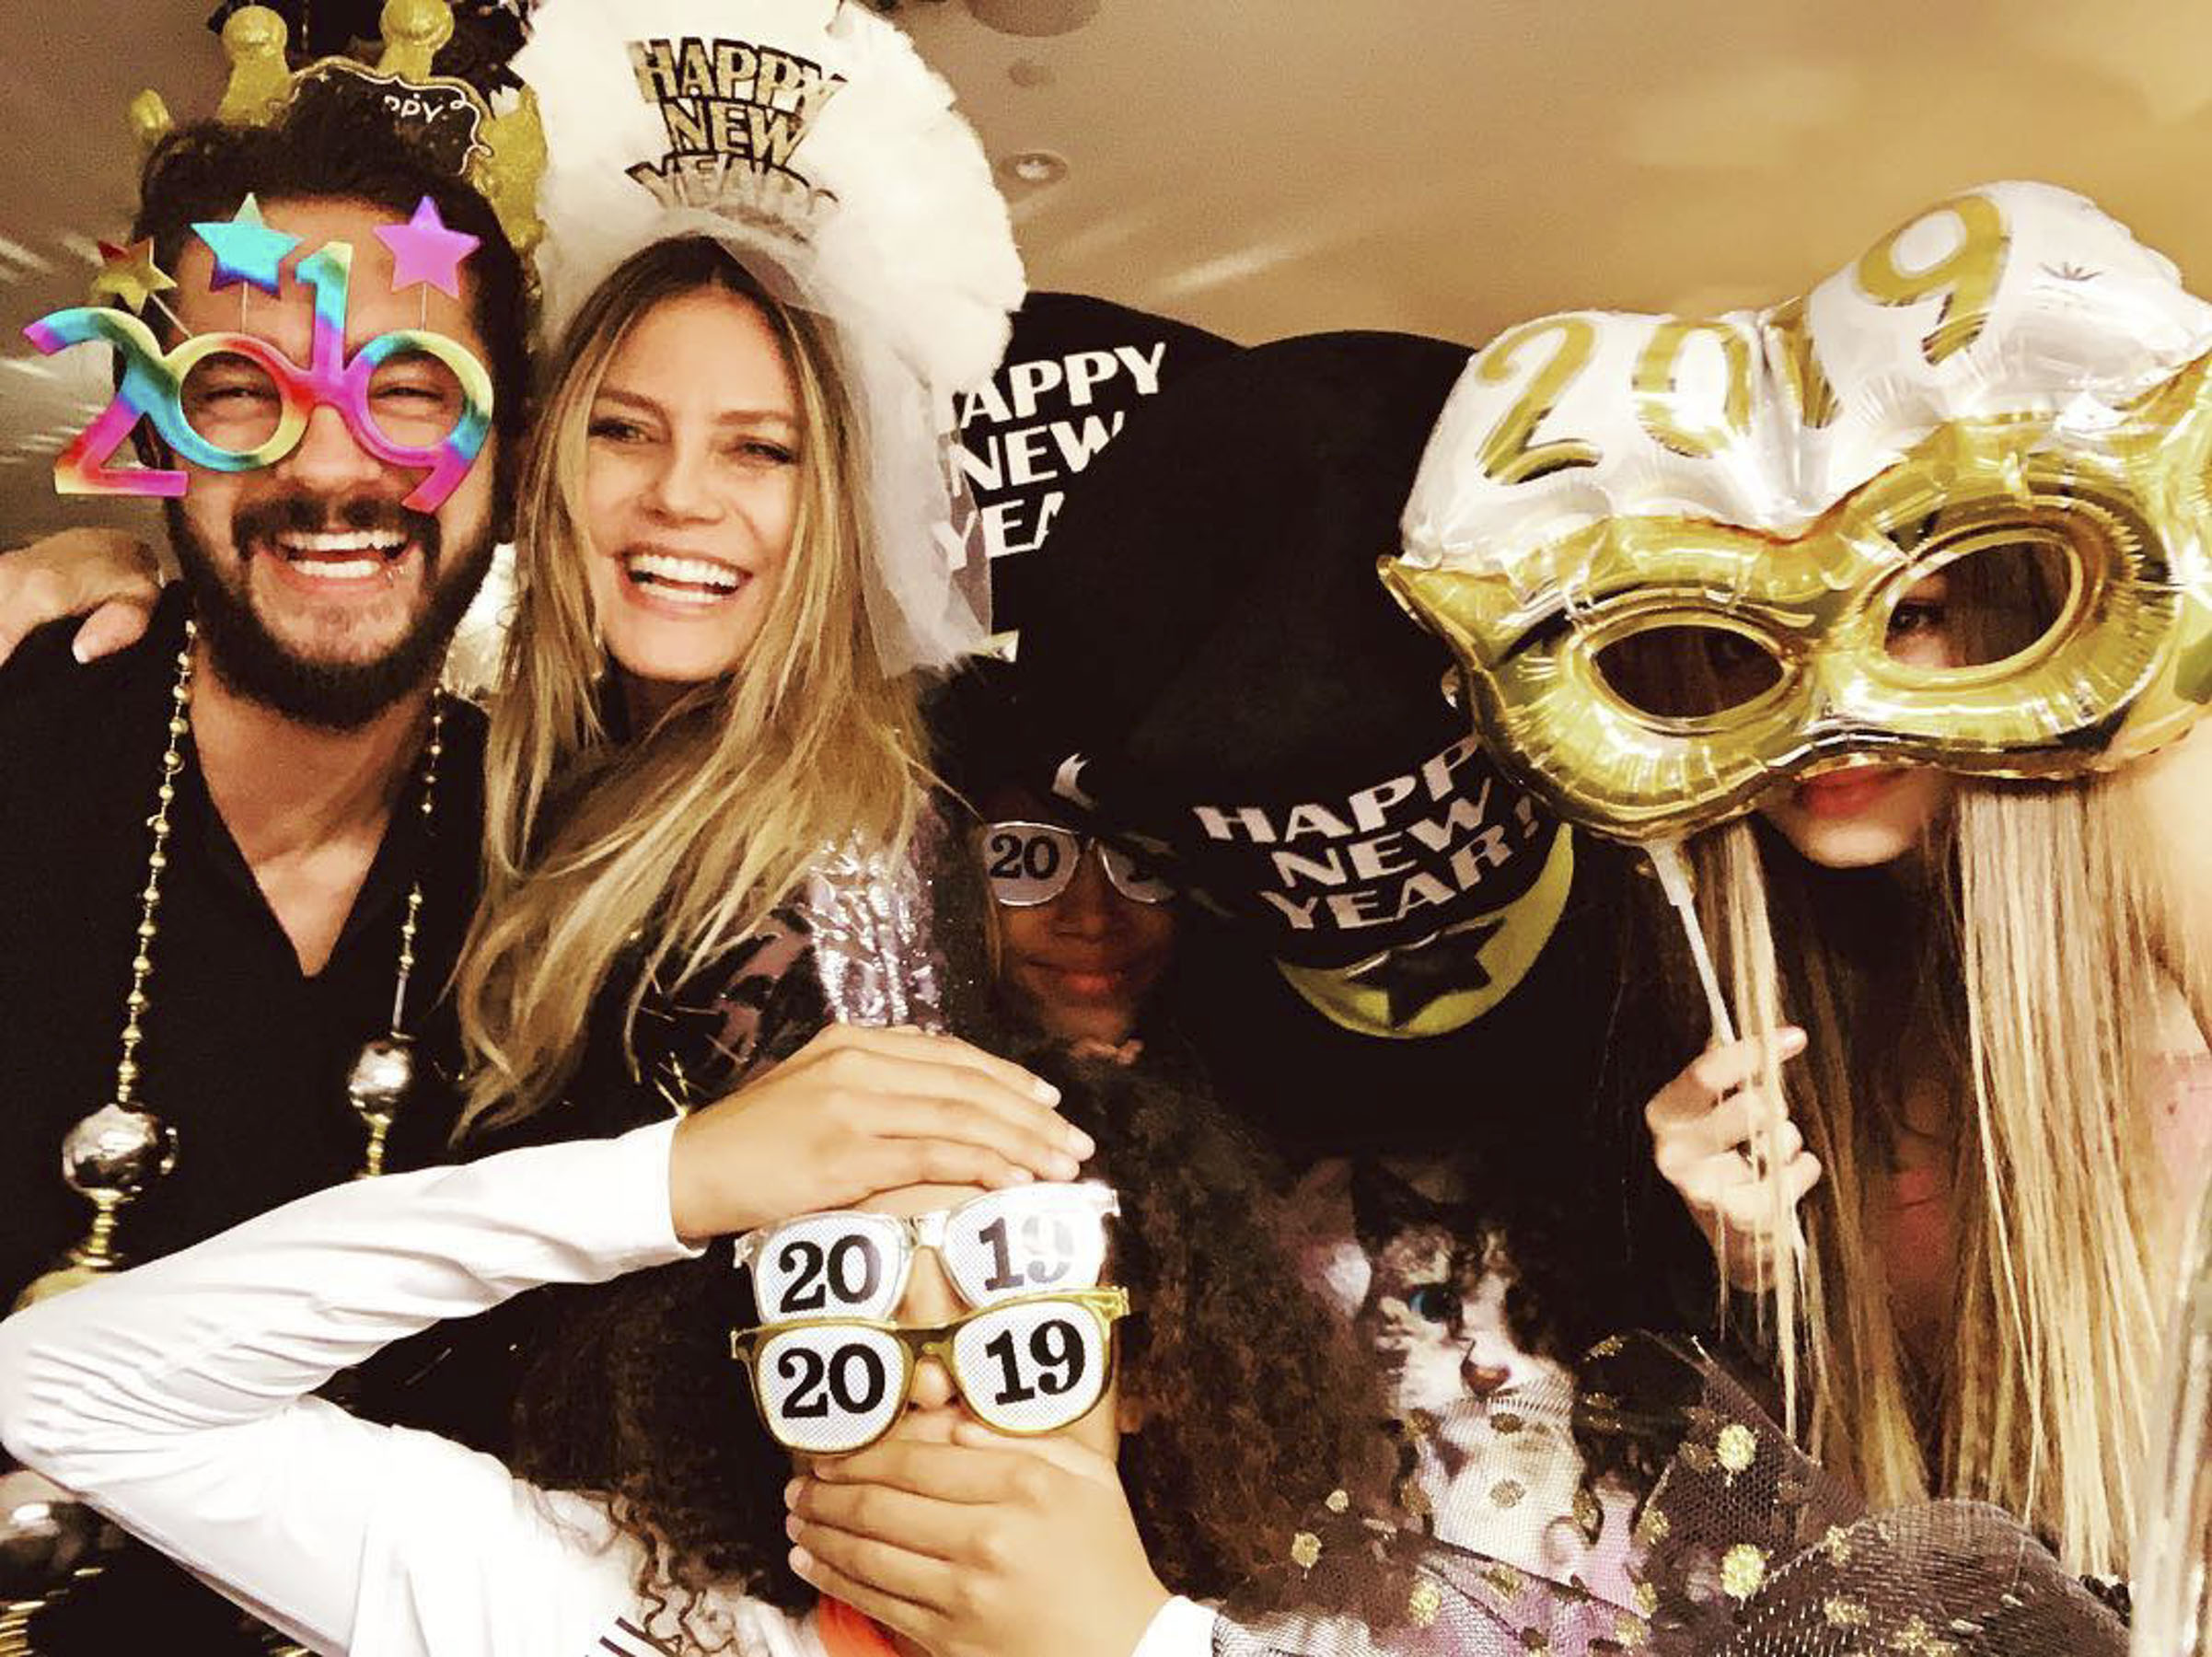 Heidi Klum and New Fiancé Tom Kaulitz Celebrate New Year's Eve a Week After Announcing Engagement